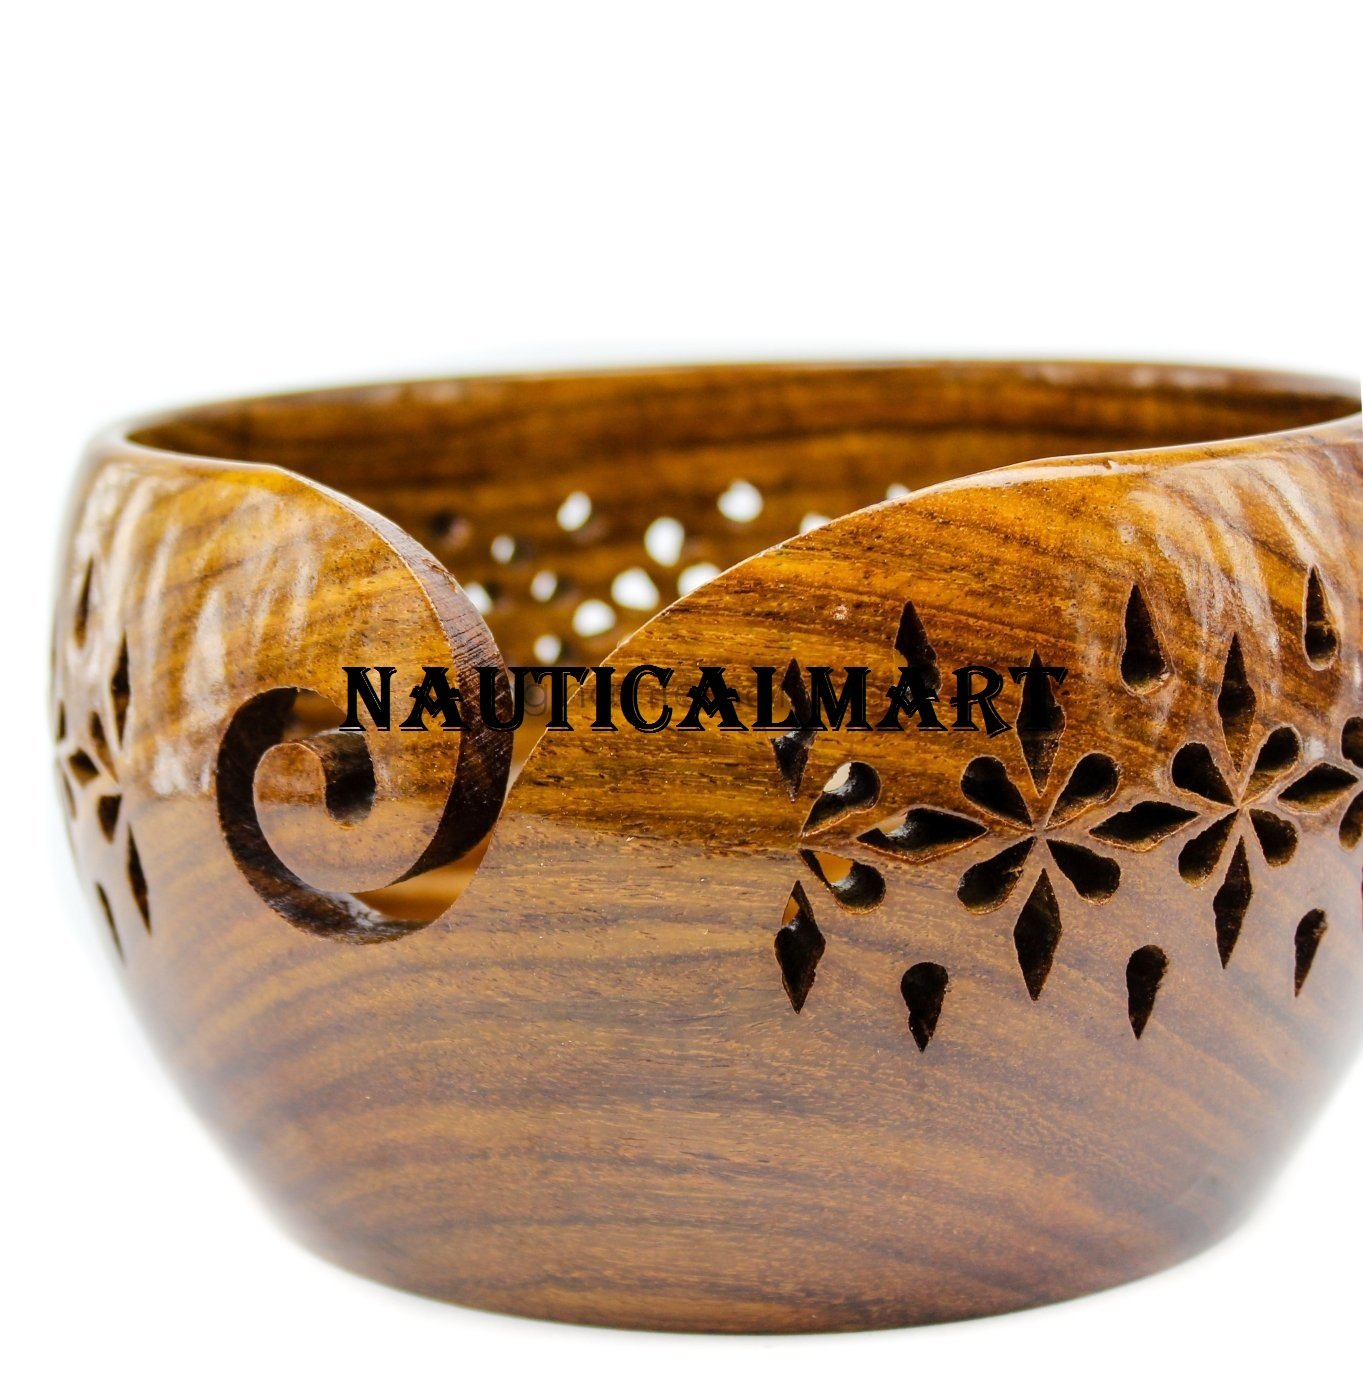 Rosewood Crafted Wooden Storage Bowl With Carved Holes & Drills | Knitting Crochet Accessories | NauticalMart